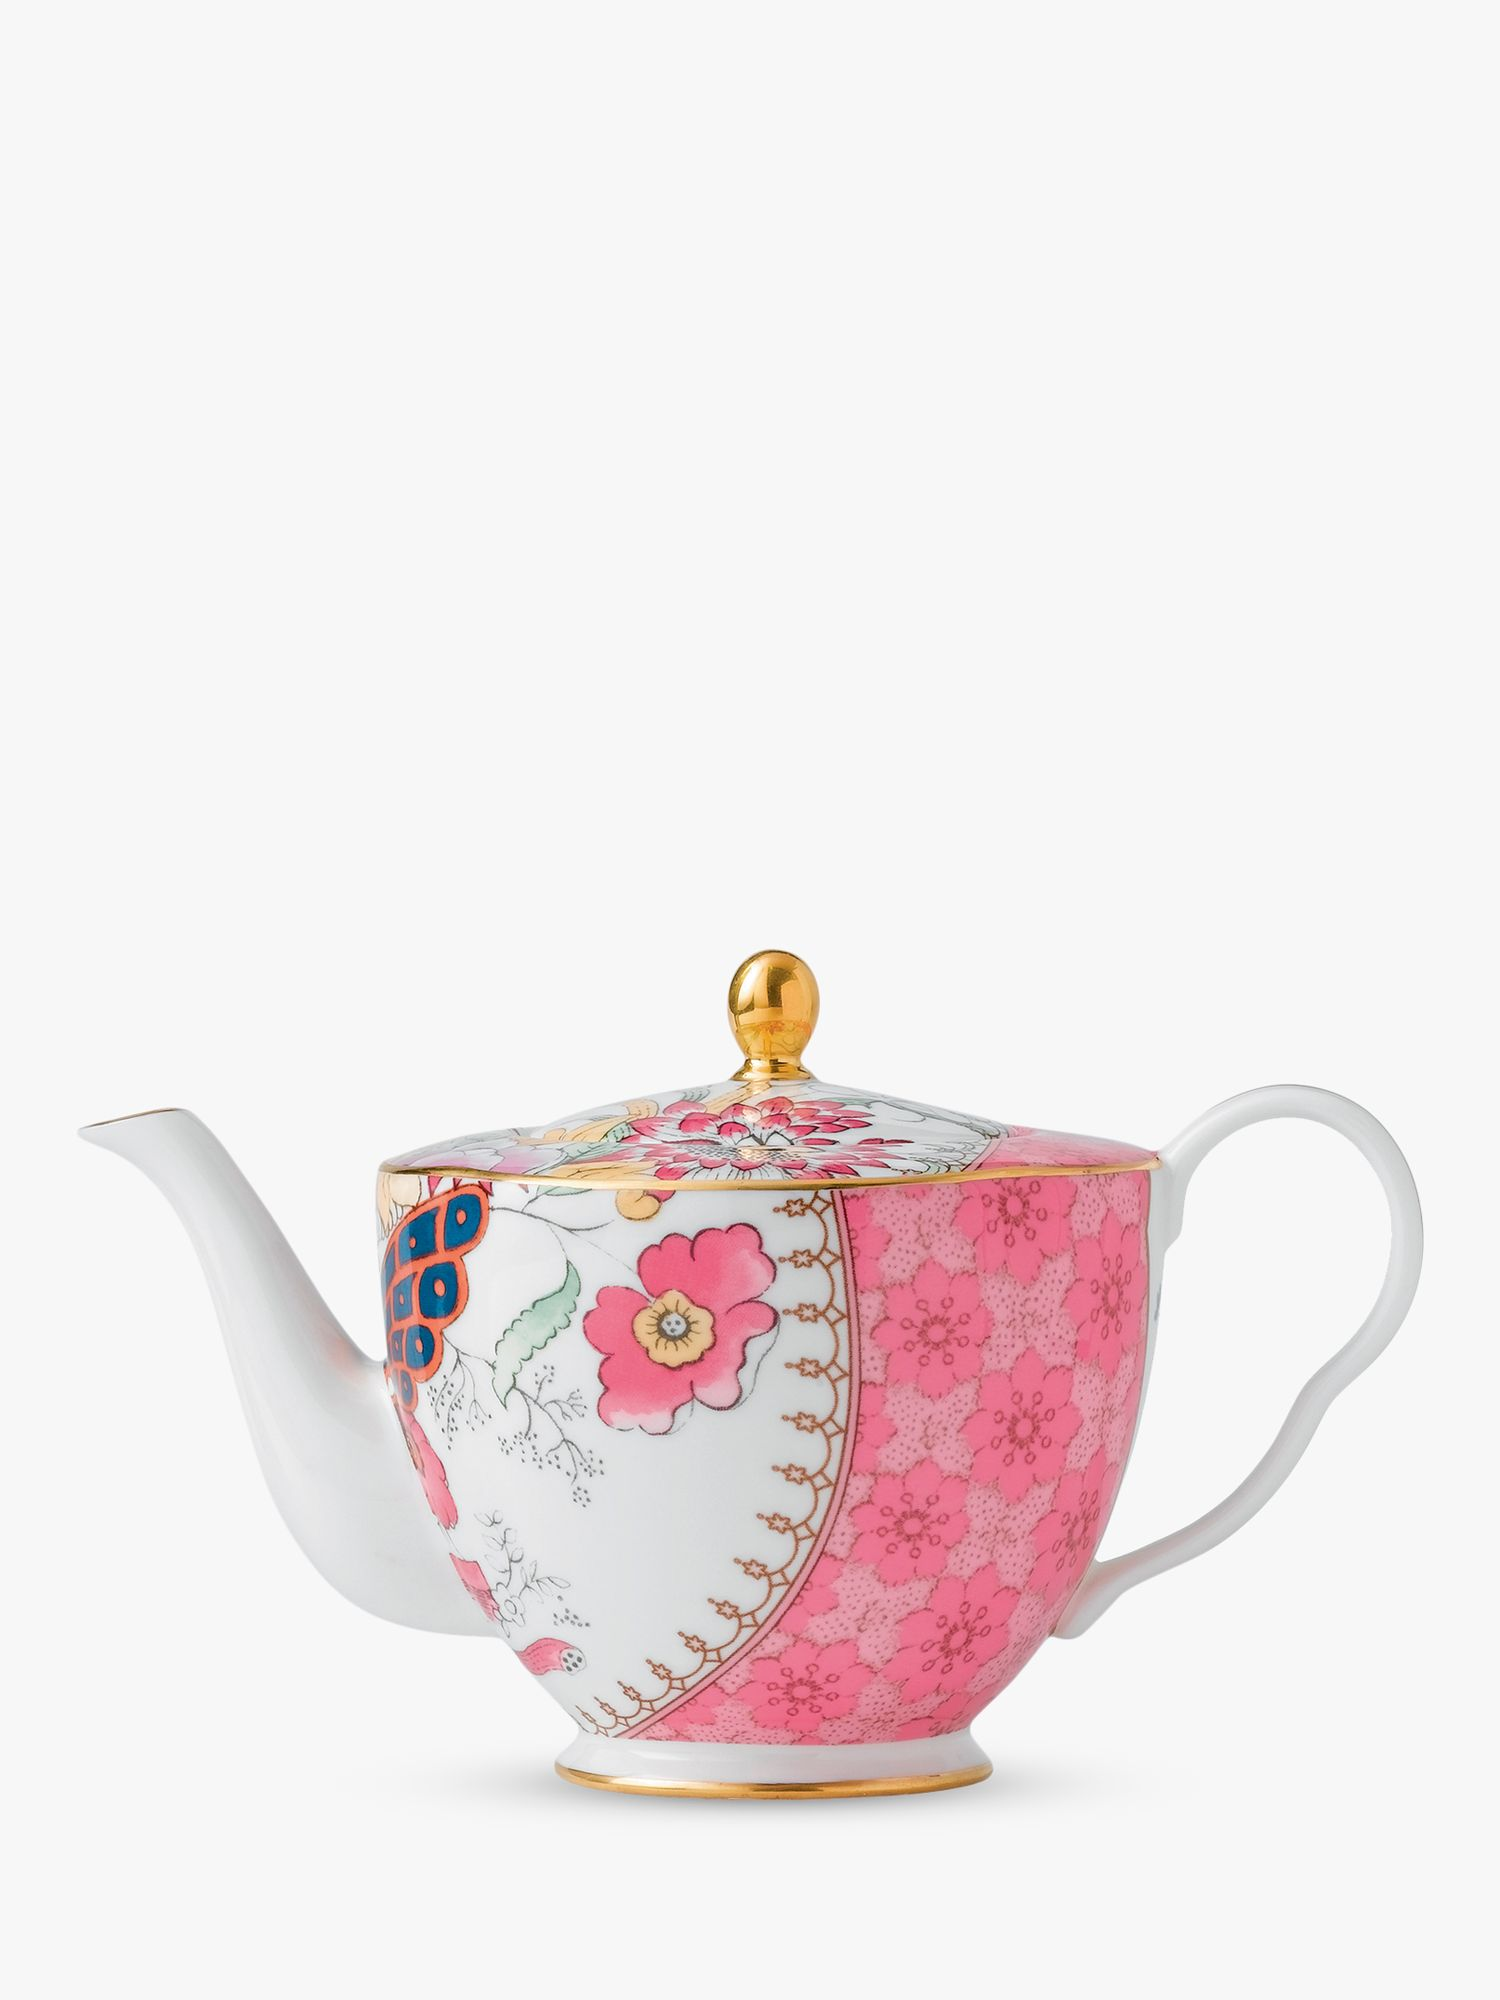 Wedgwood Wedgwood Butterfly Bloom Teapot, Pink, 500ml